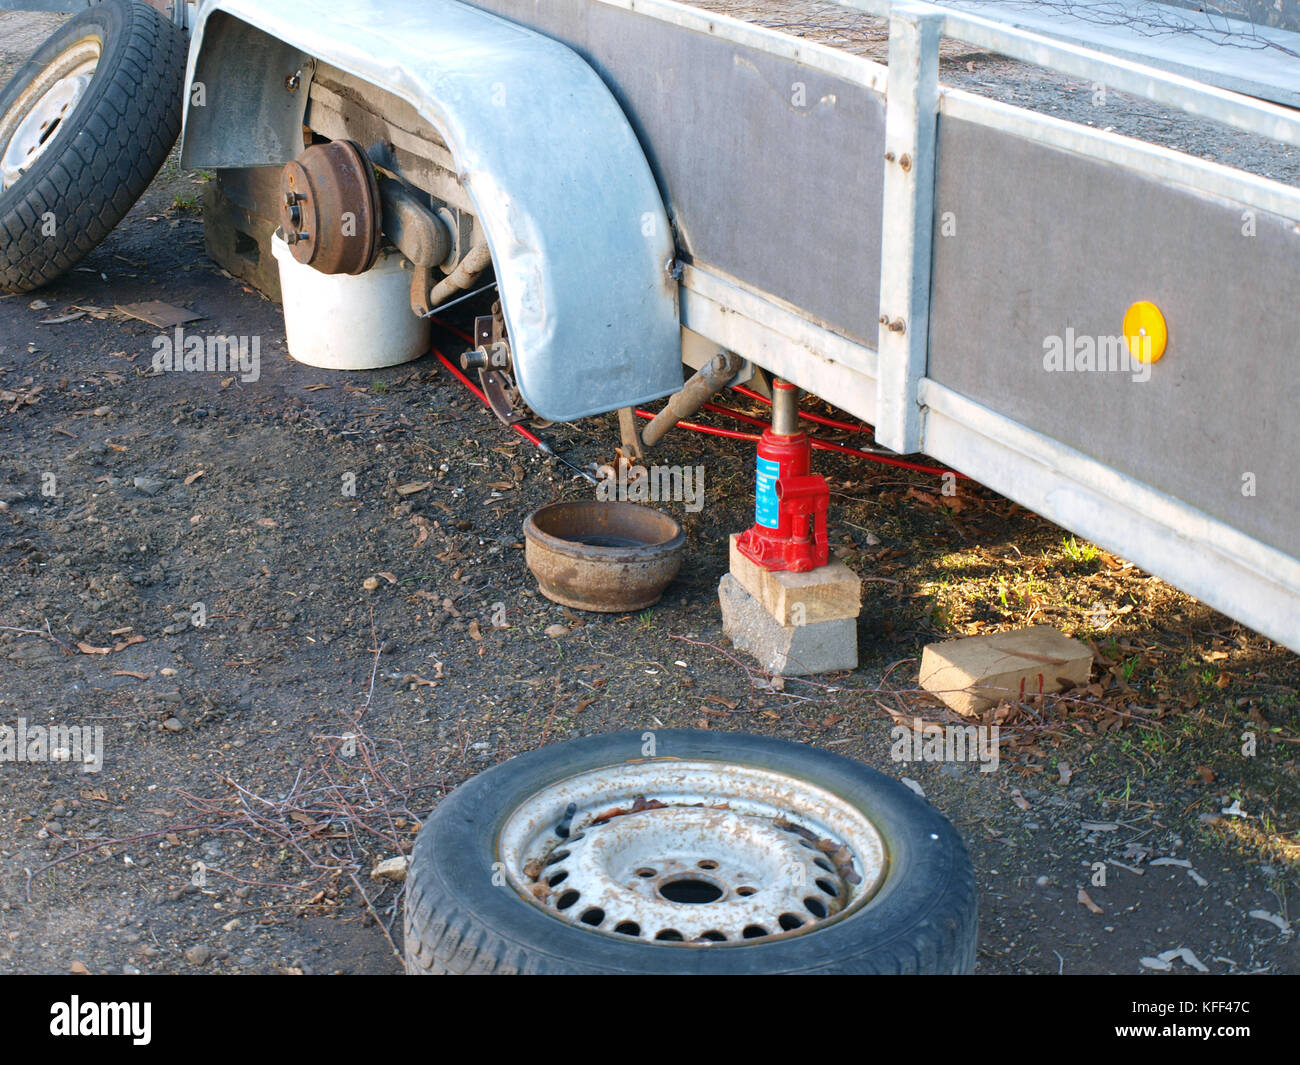 Outdoor Anhänger Trailer Repairing Outdoor On The Ground Without Wheels